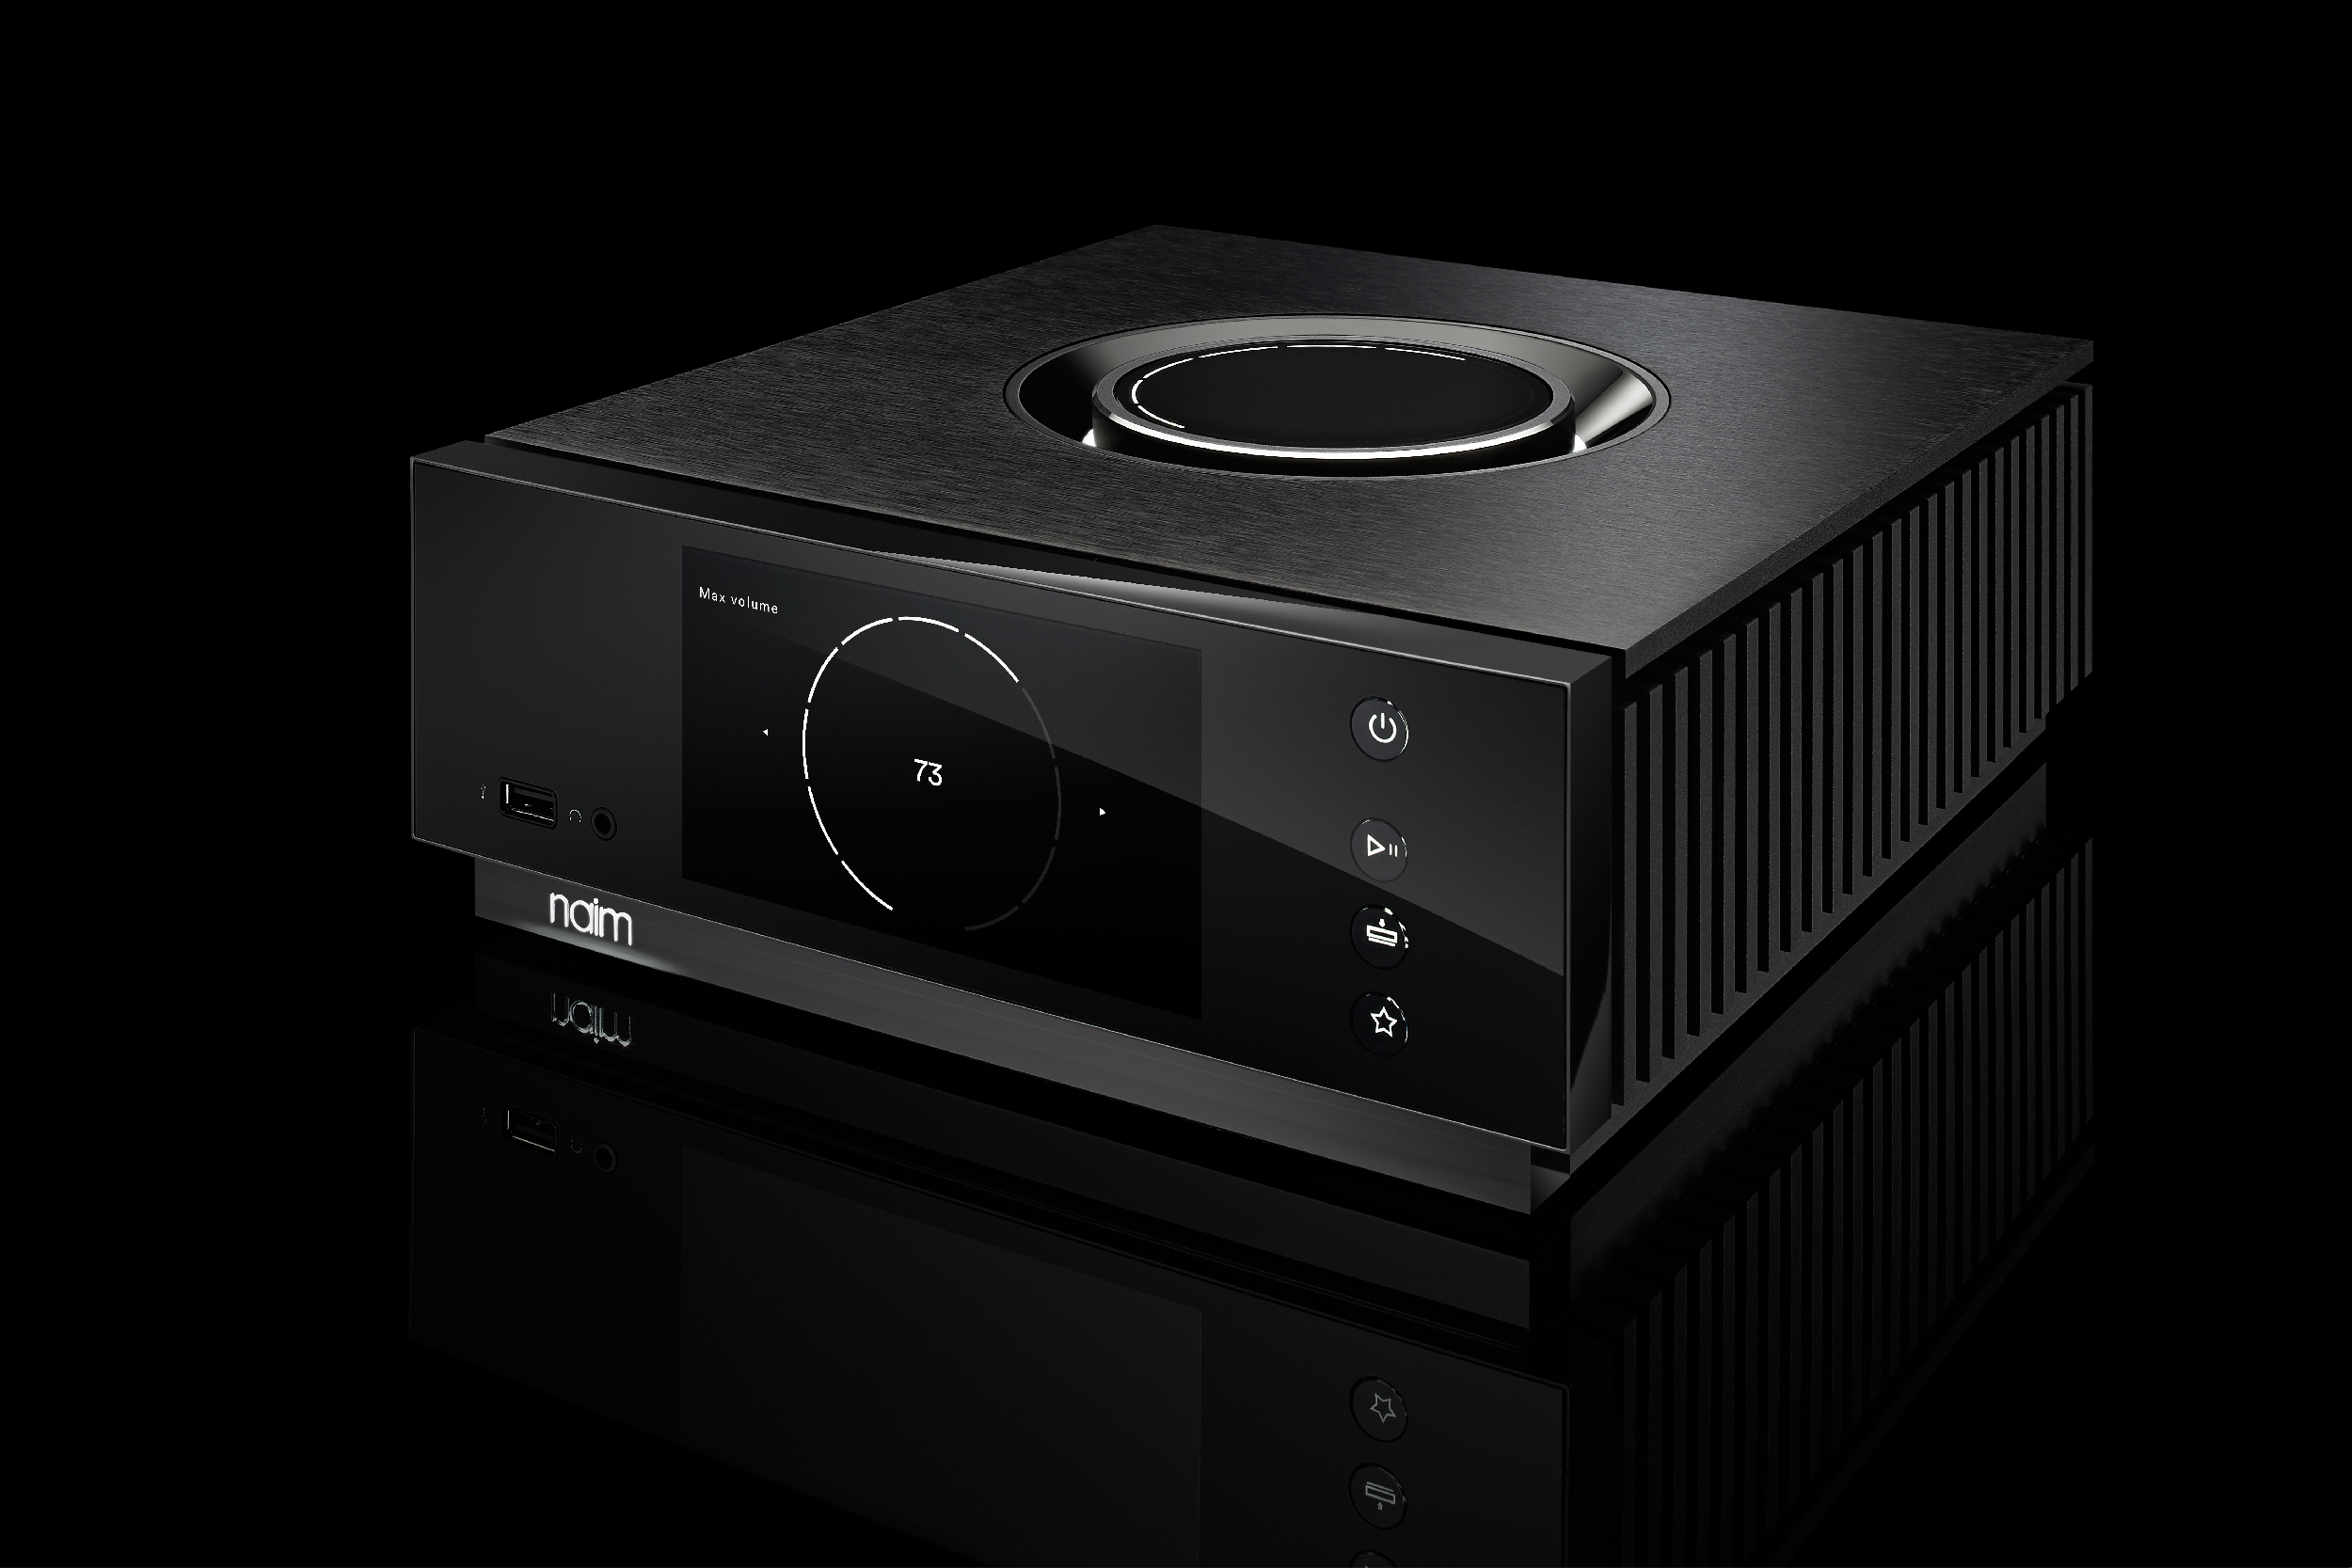 The Naim Atom: A little black box to make your music jump to life